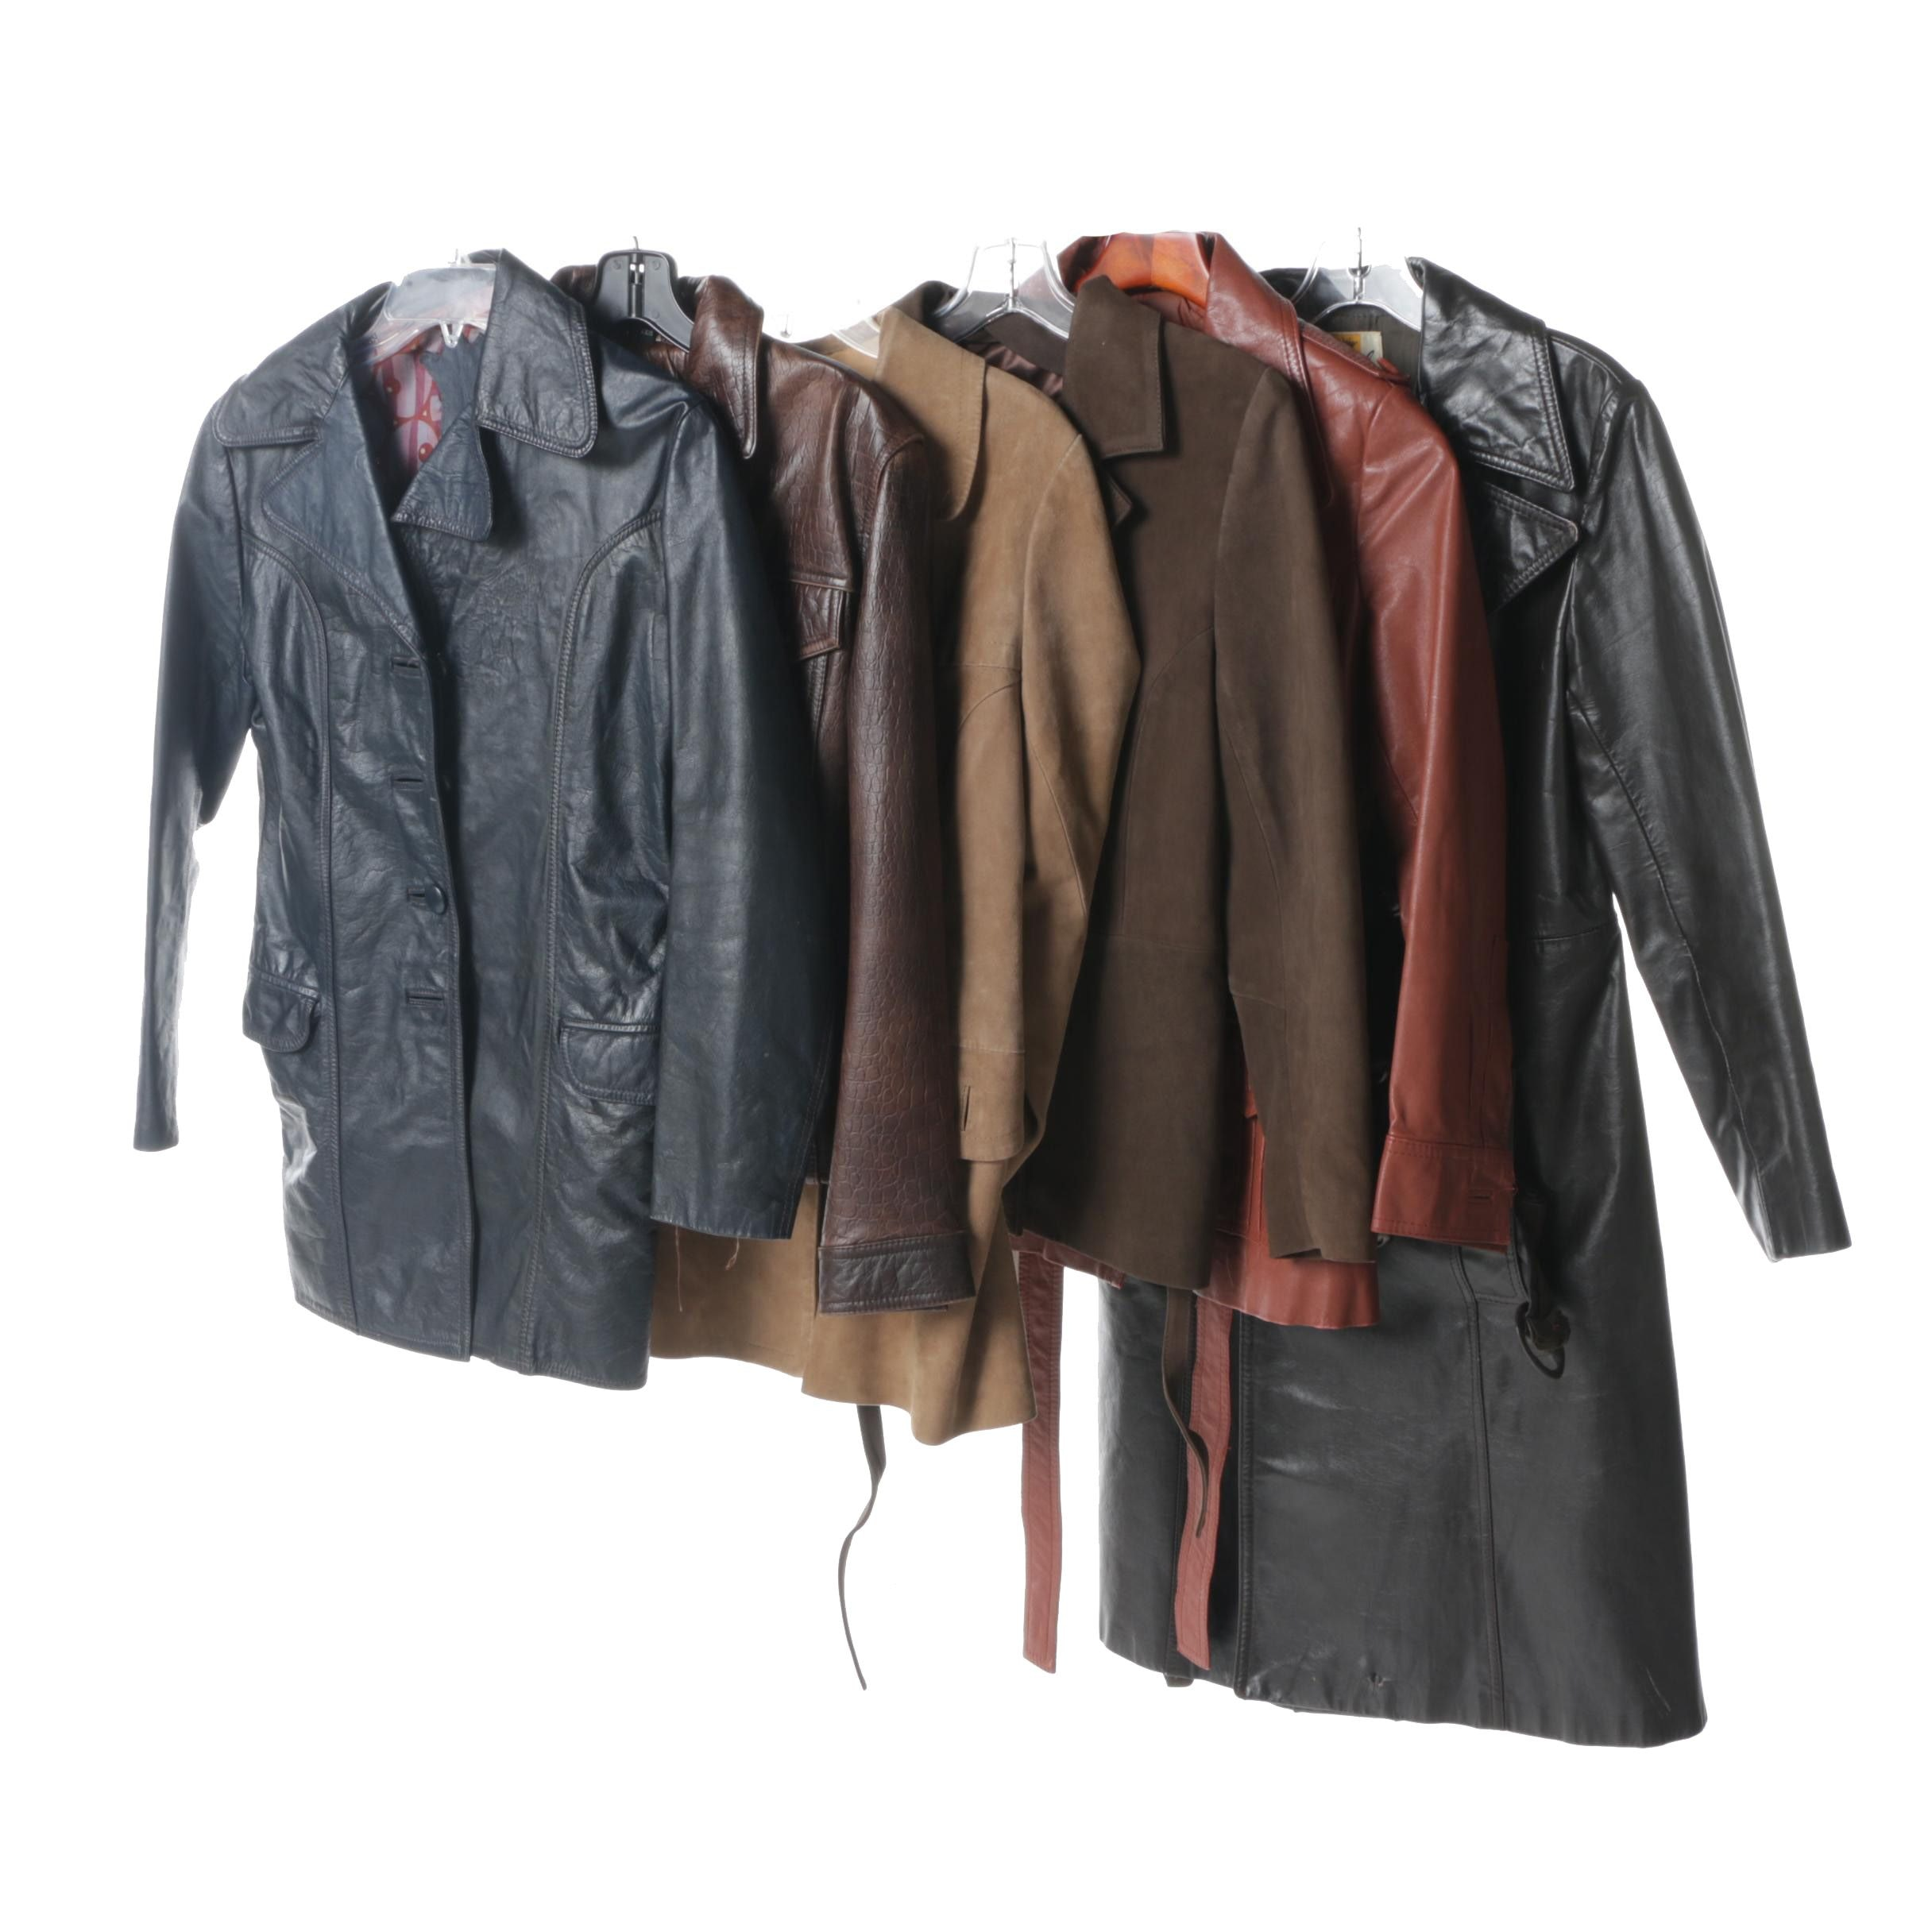 Women's 1970s and 1980s Leather and Suede Coats Including Imperial